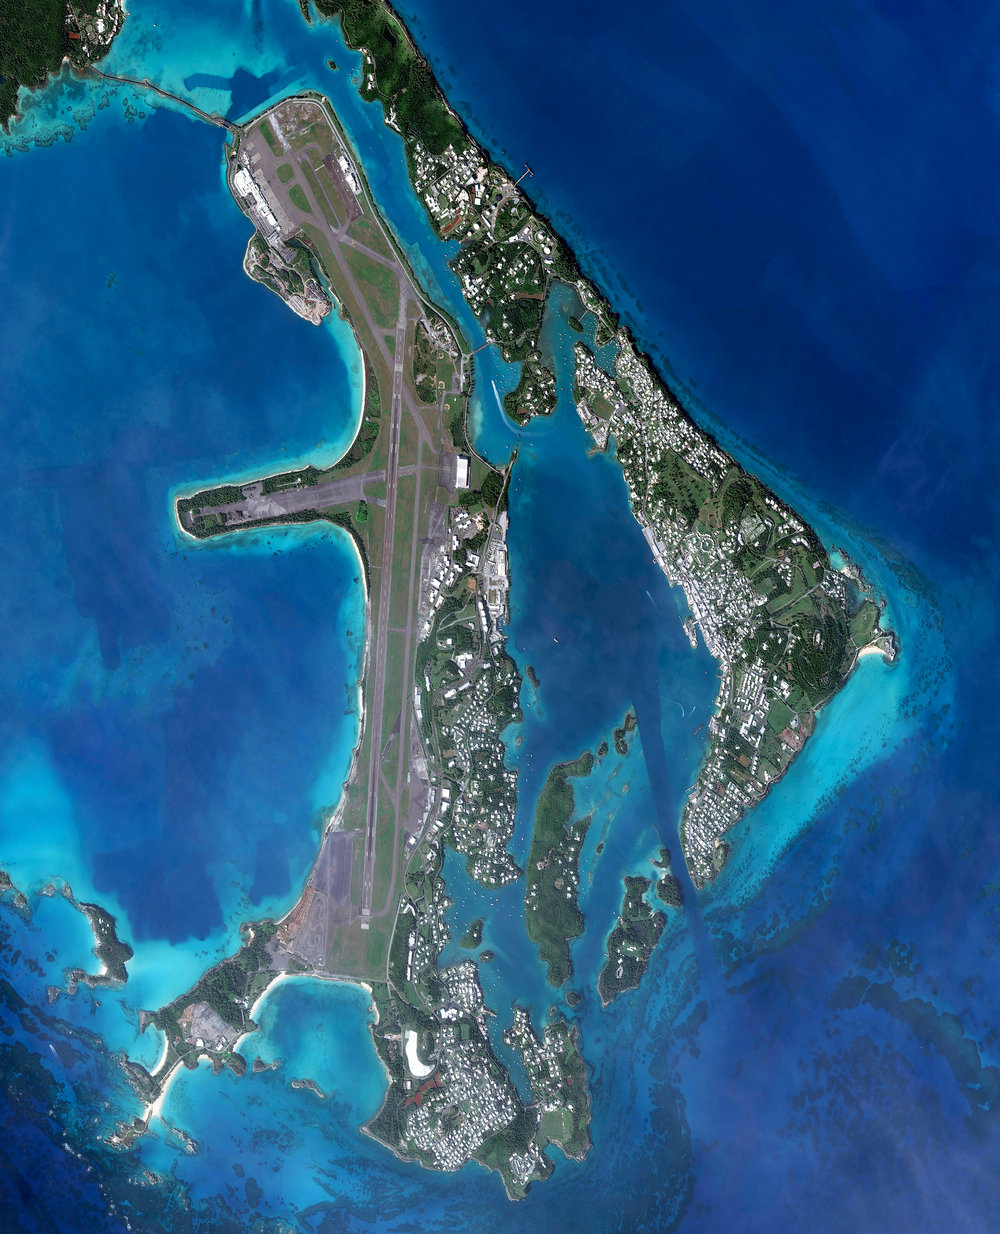 5/1/2017 L.F. Wade International Airport Bermuda 32.368277, -64.685628 L.F. Wade International Airport is the only airport in the British overseas territory of Bermuda. Due to the island's substantial distance from the nearest land mass, the airport only handles jets and long-range turboprops. The facility accommodates roughly one million passengers every year. Source imagery: DigitalGlobe